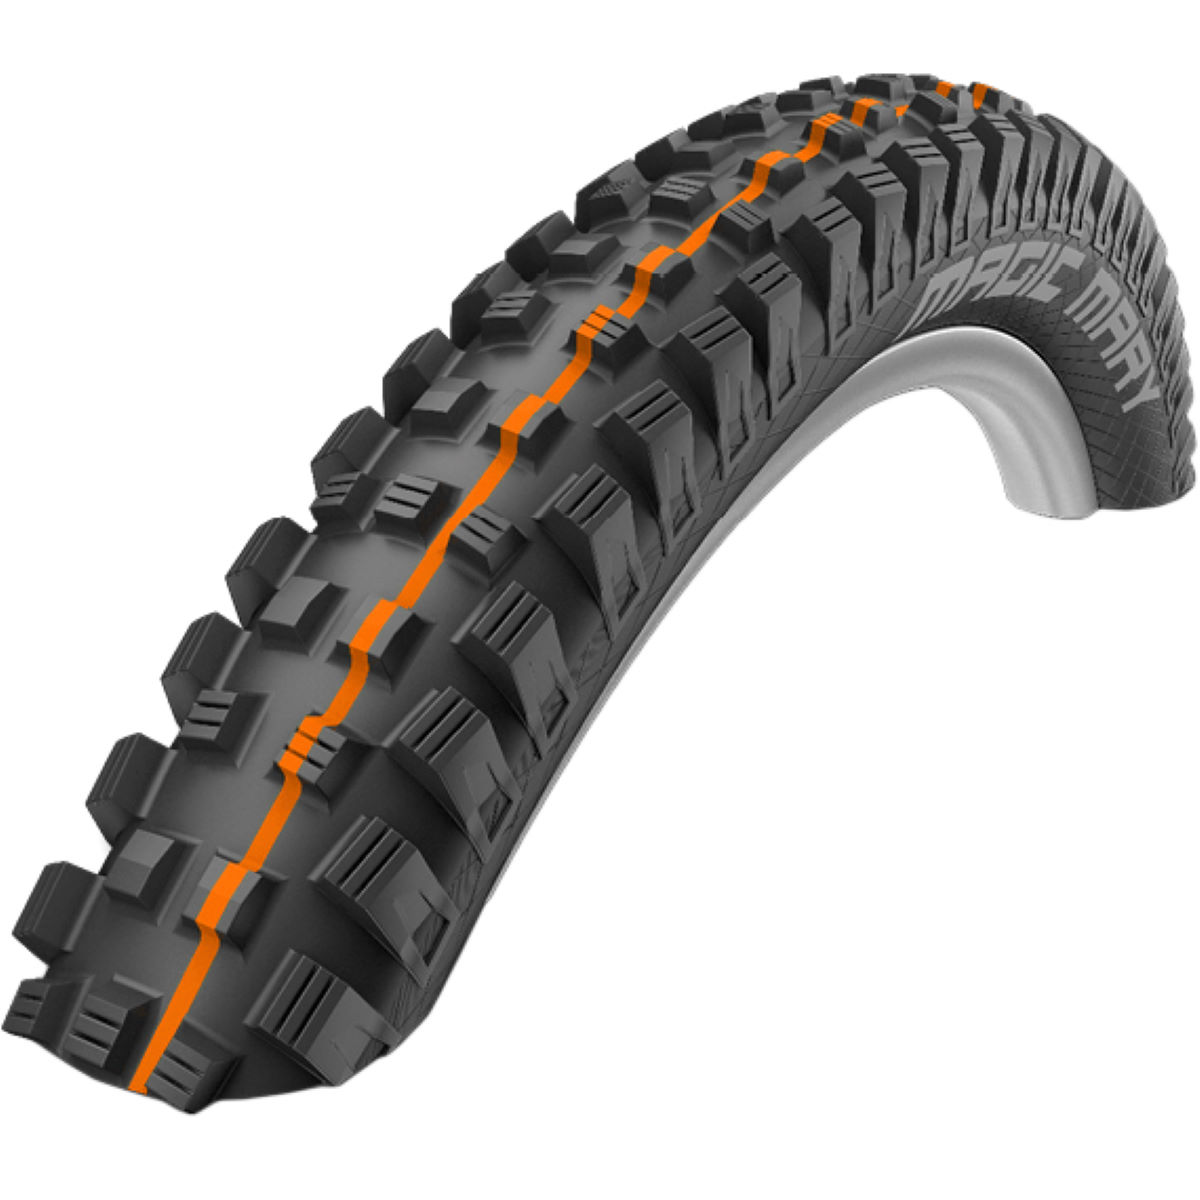 Pneu VTT Schwalbe Magic Mary Addix SuperGravity - 27.5' (650b) 2.35' F